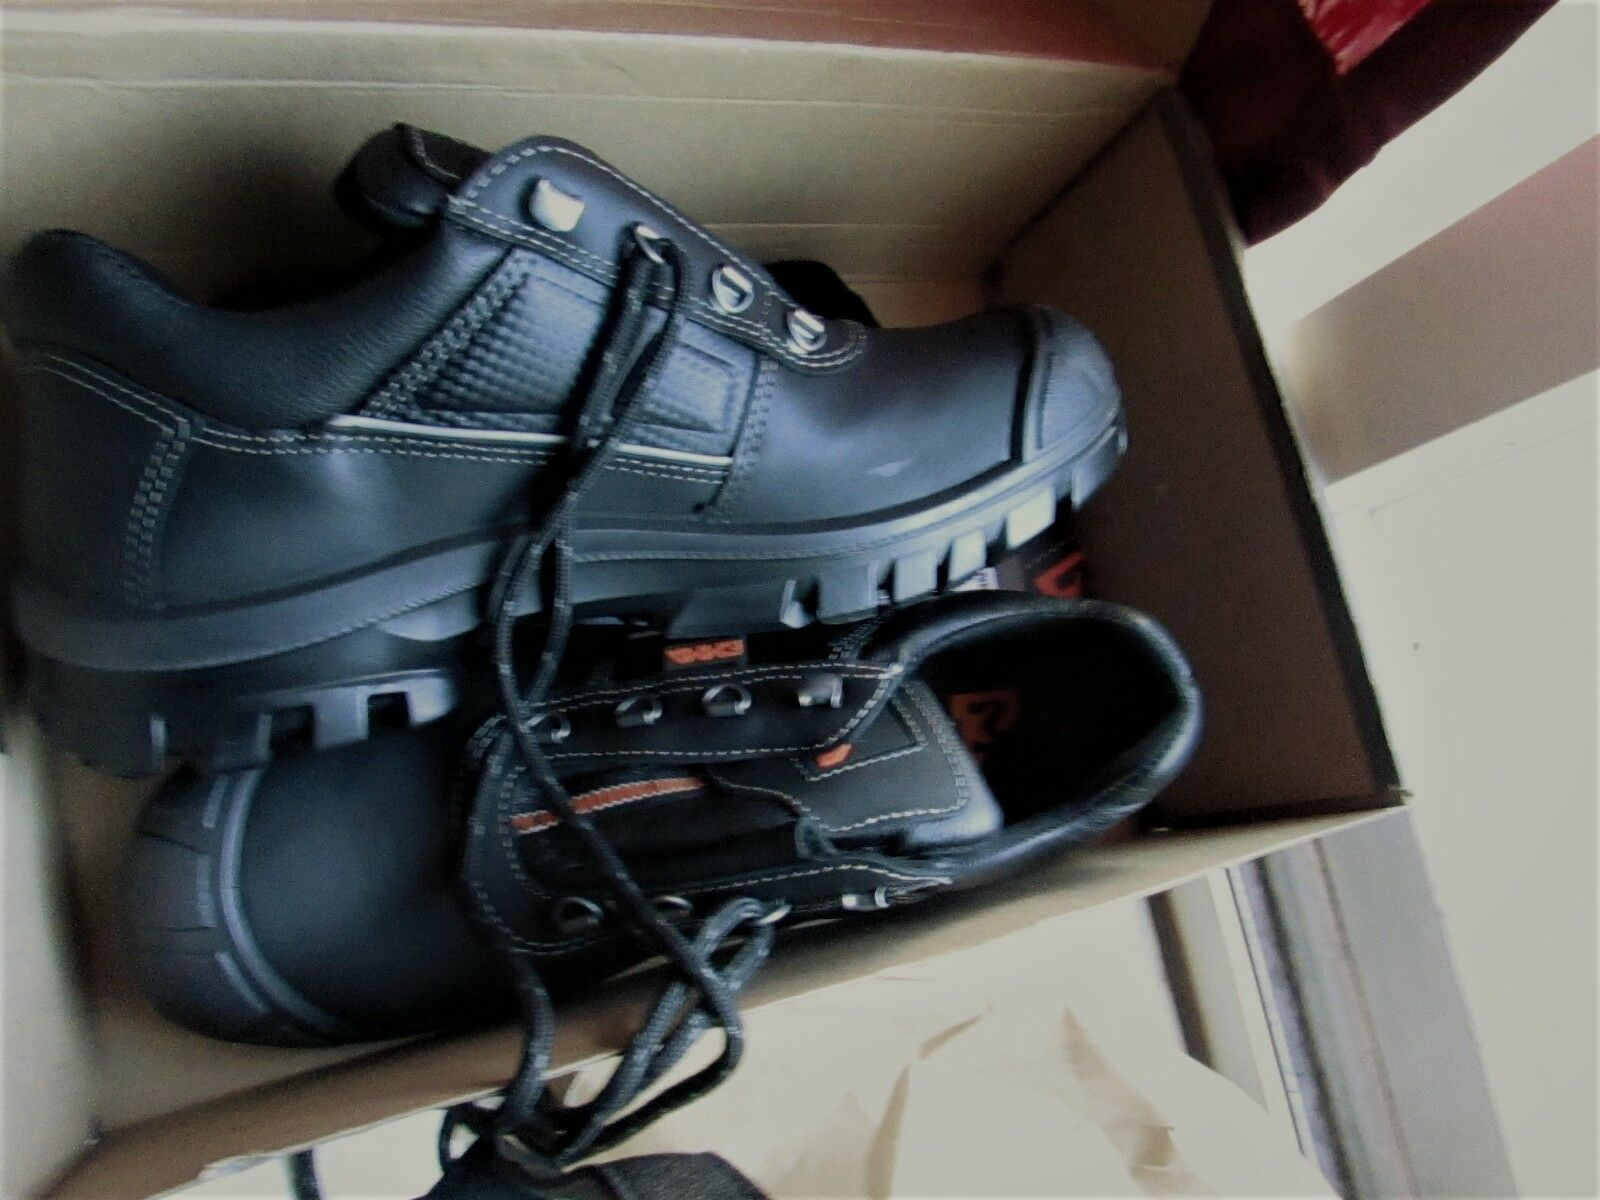 Emma Safety Safety Emma Footwear BOB Work Shoes S3-Safetyshoe with sole plate for wet work dfd532